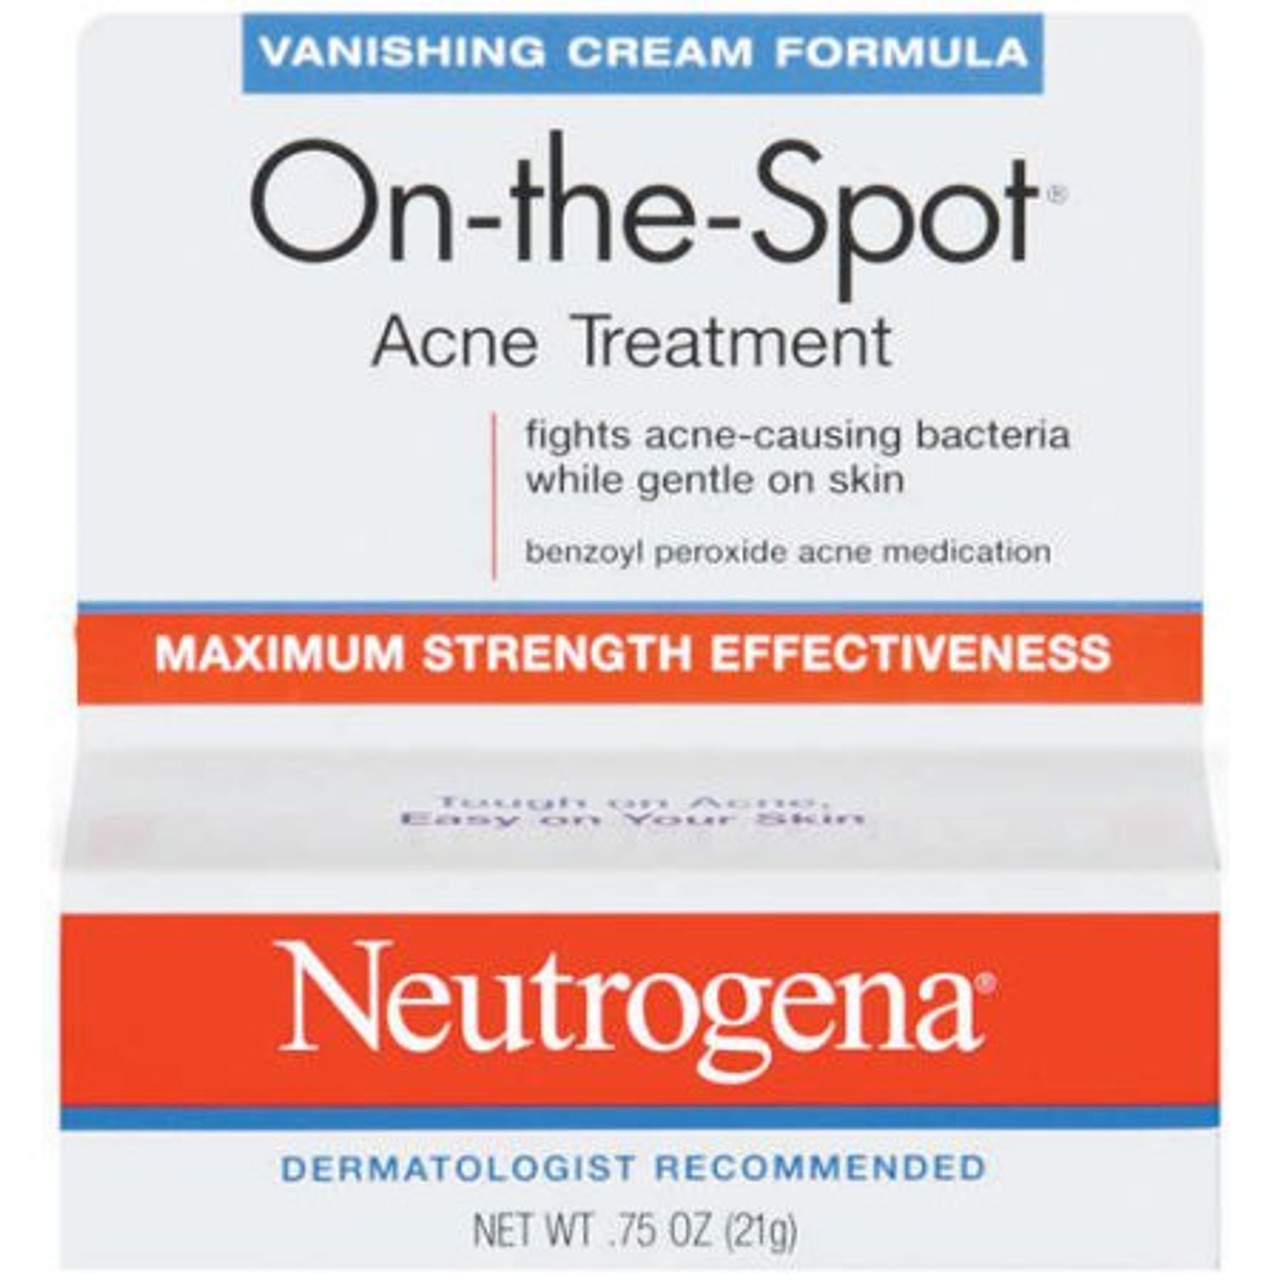 Neutrogena Onthespot Acne Treatment Vanishing Formula 0 75 Oz